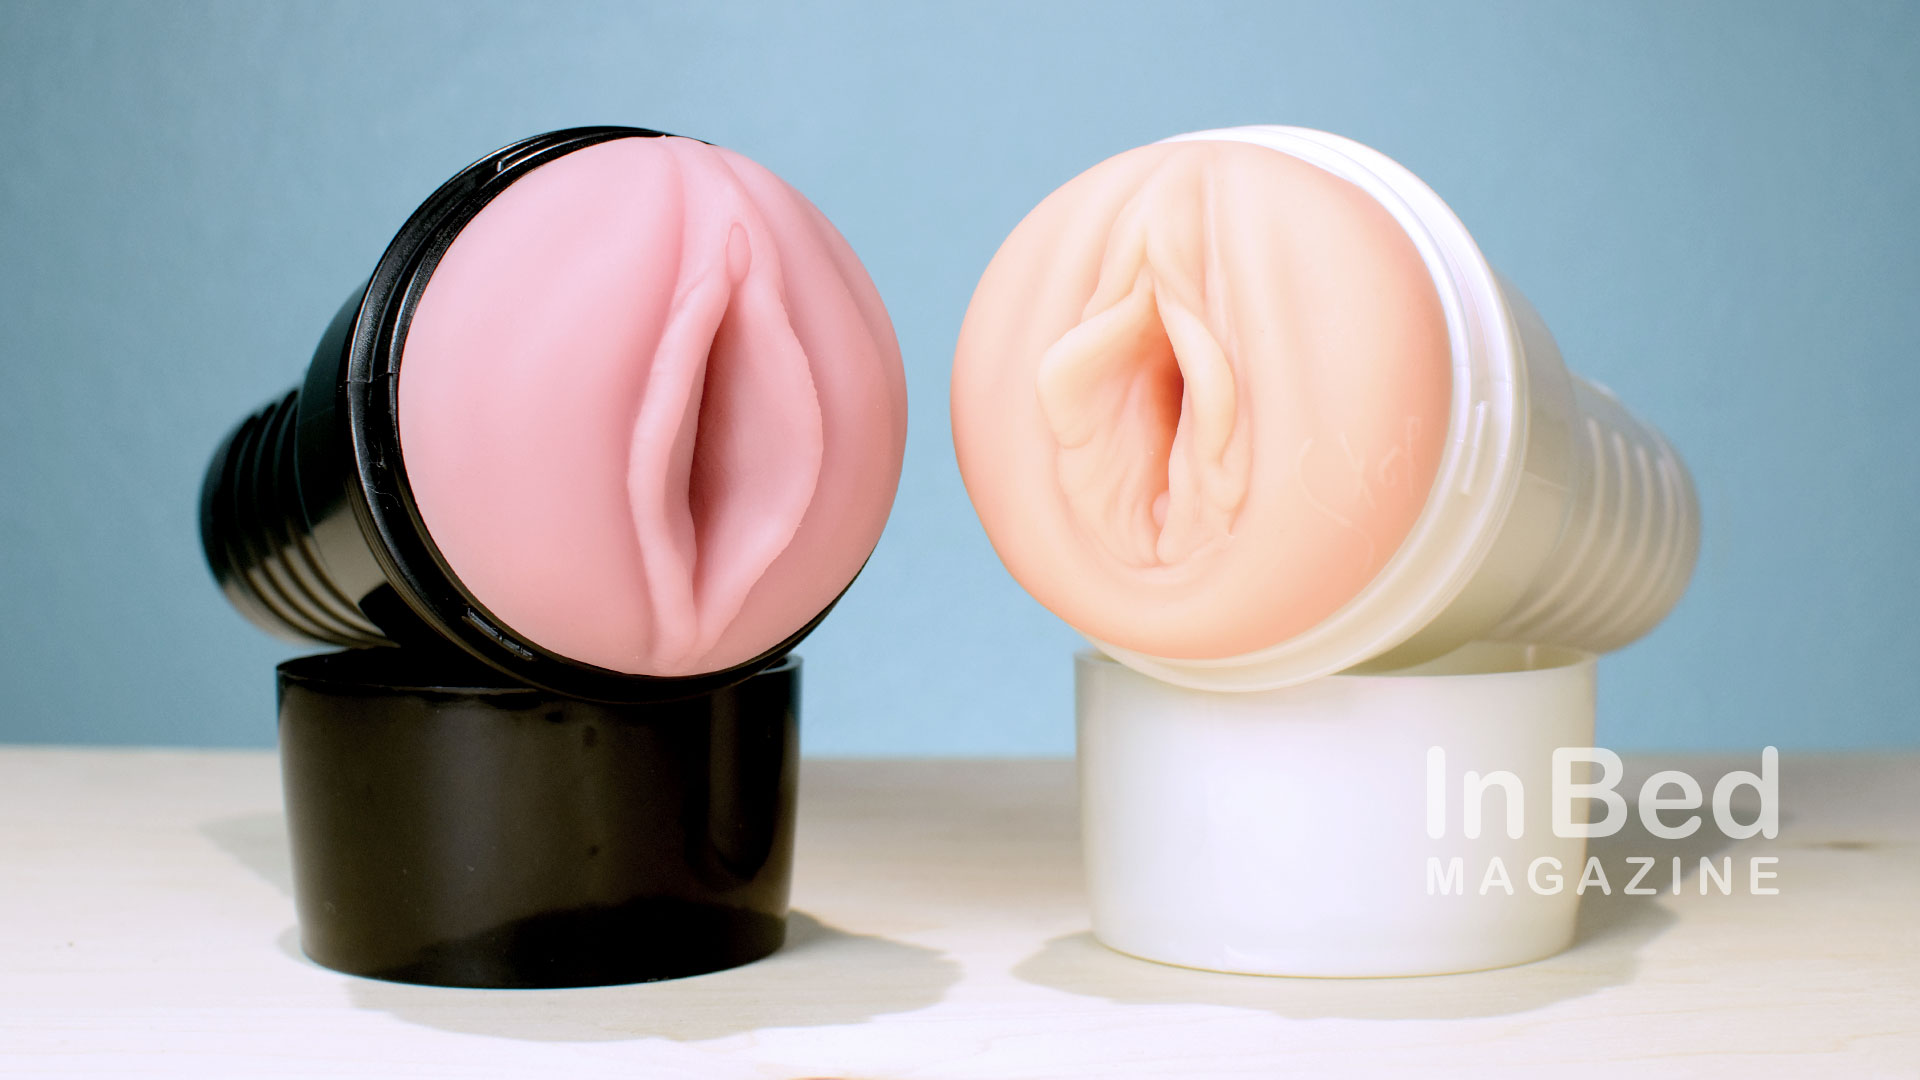 How To Make A Fleshlight Homemade